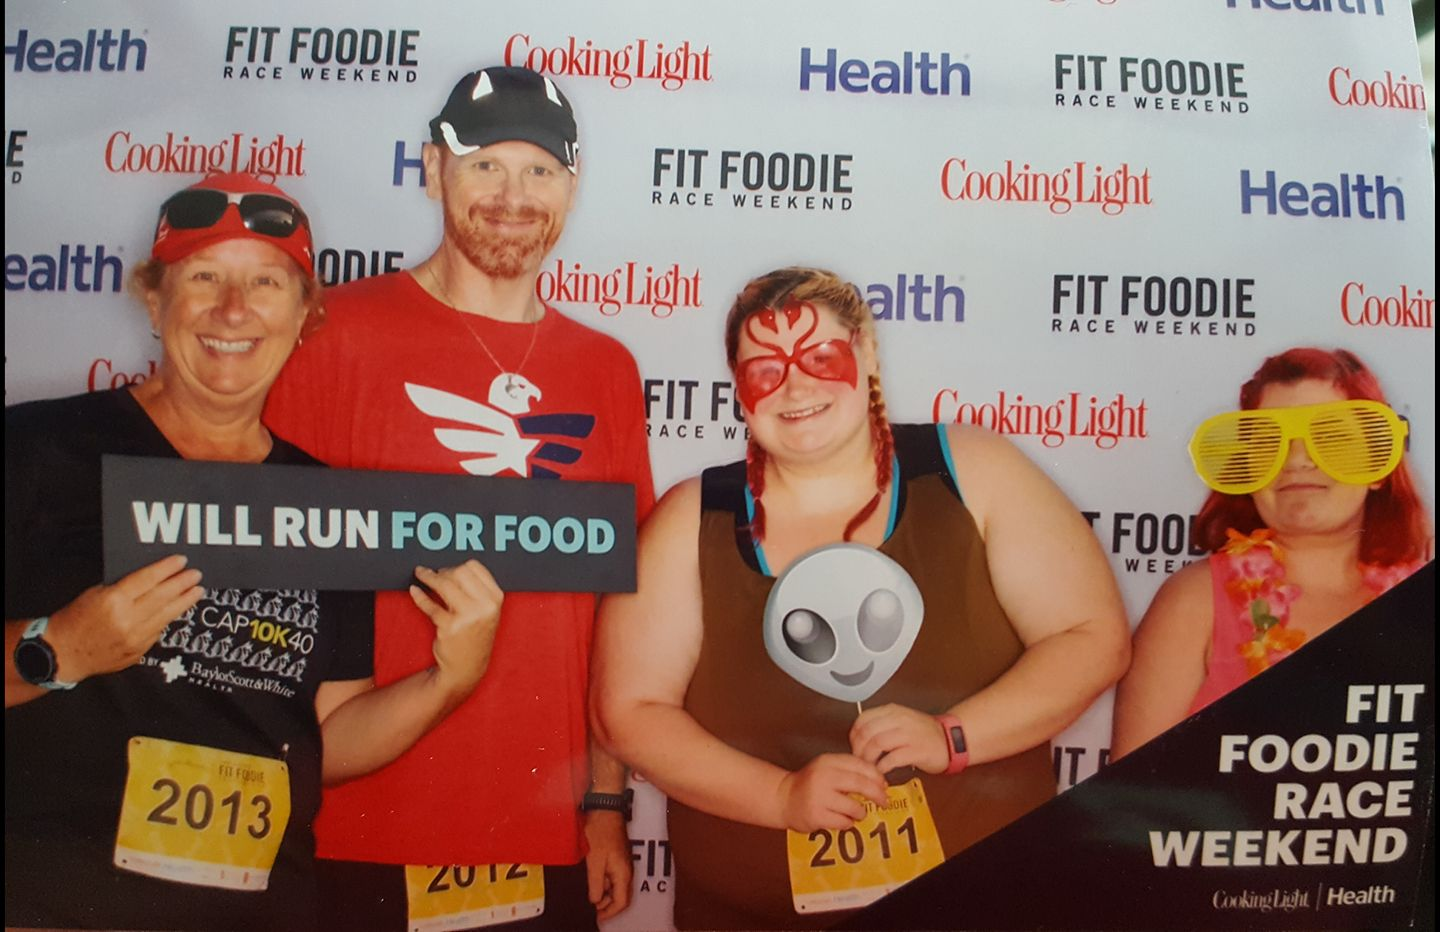 Photo from the Fit Foodie 5k 2017